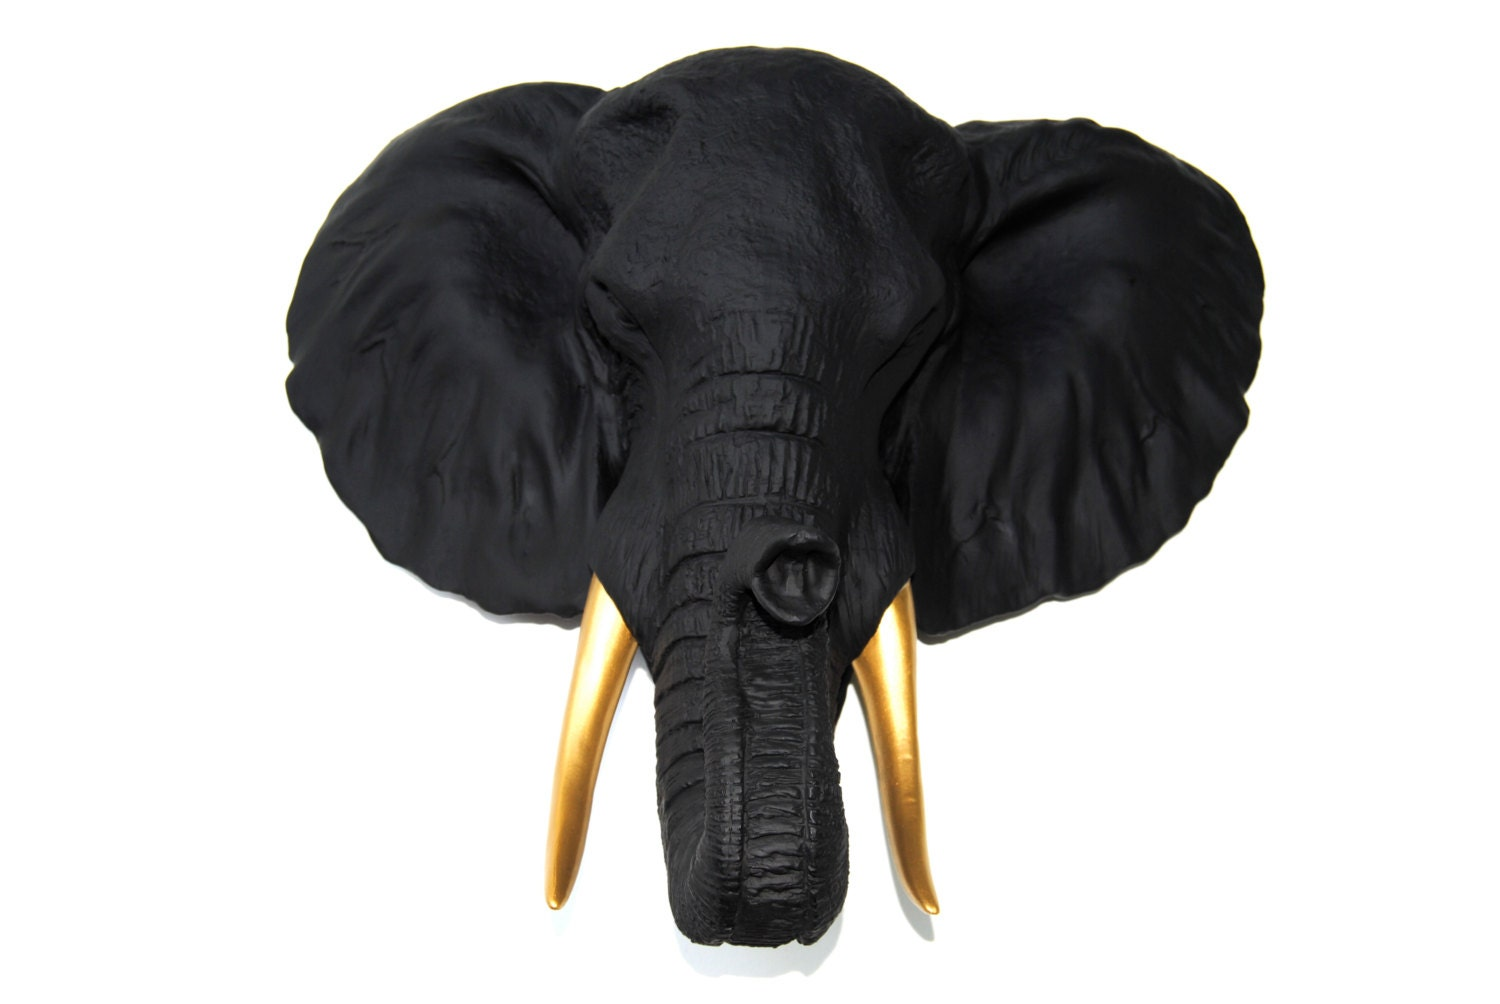 Black Elephant Head Wall Mount With Gold Tusks Wall Mount